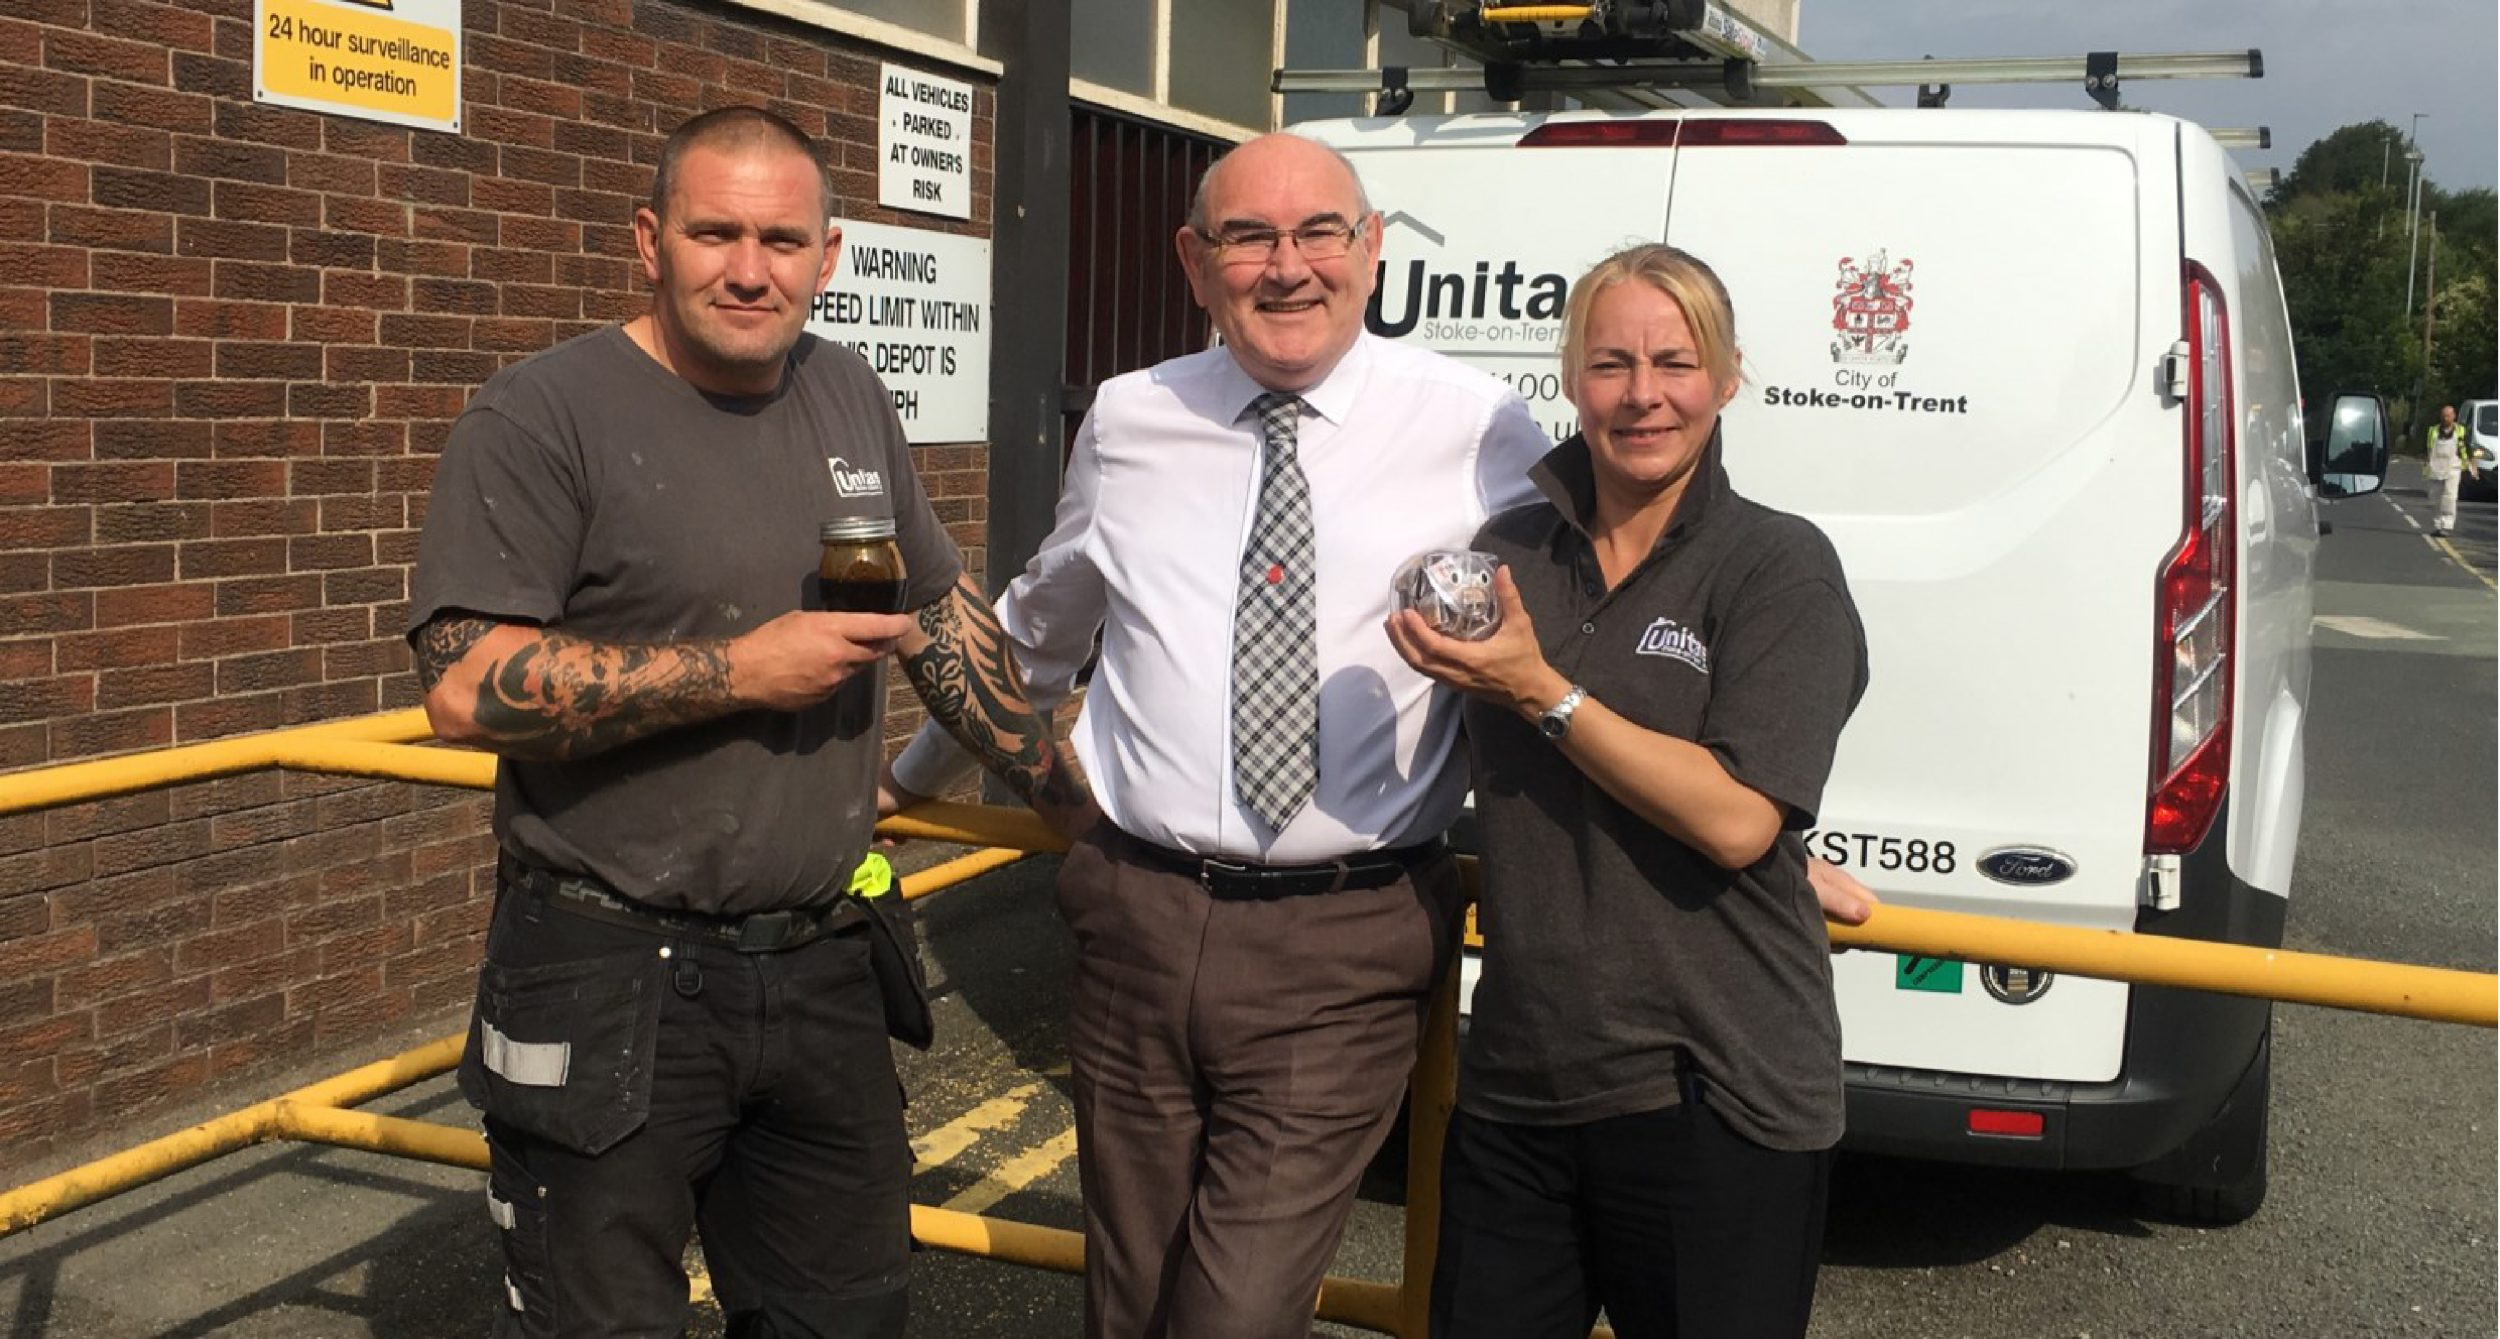 unitas employees kerry and dave with stop smoking counsellor les